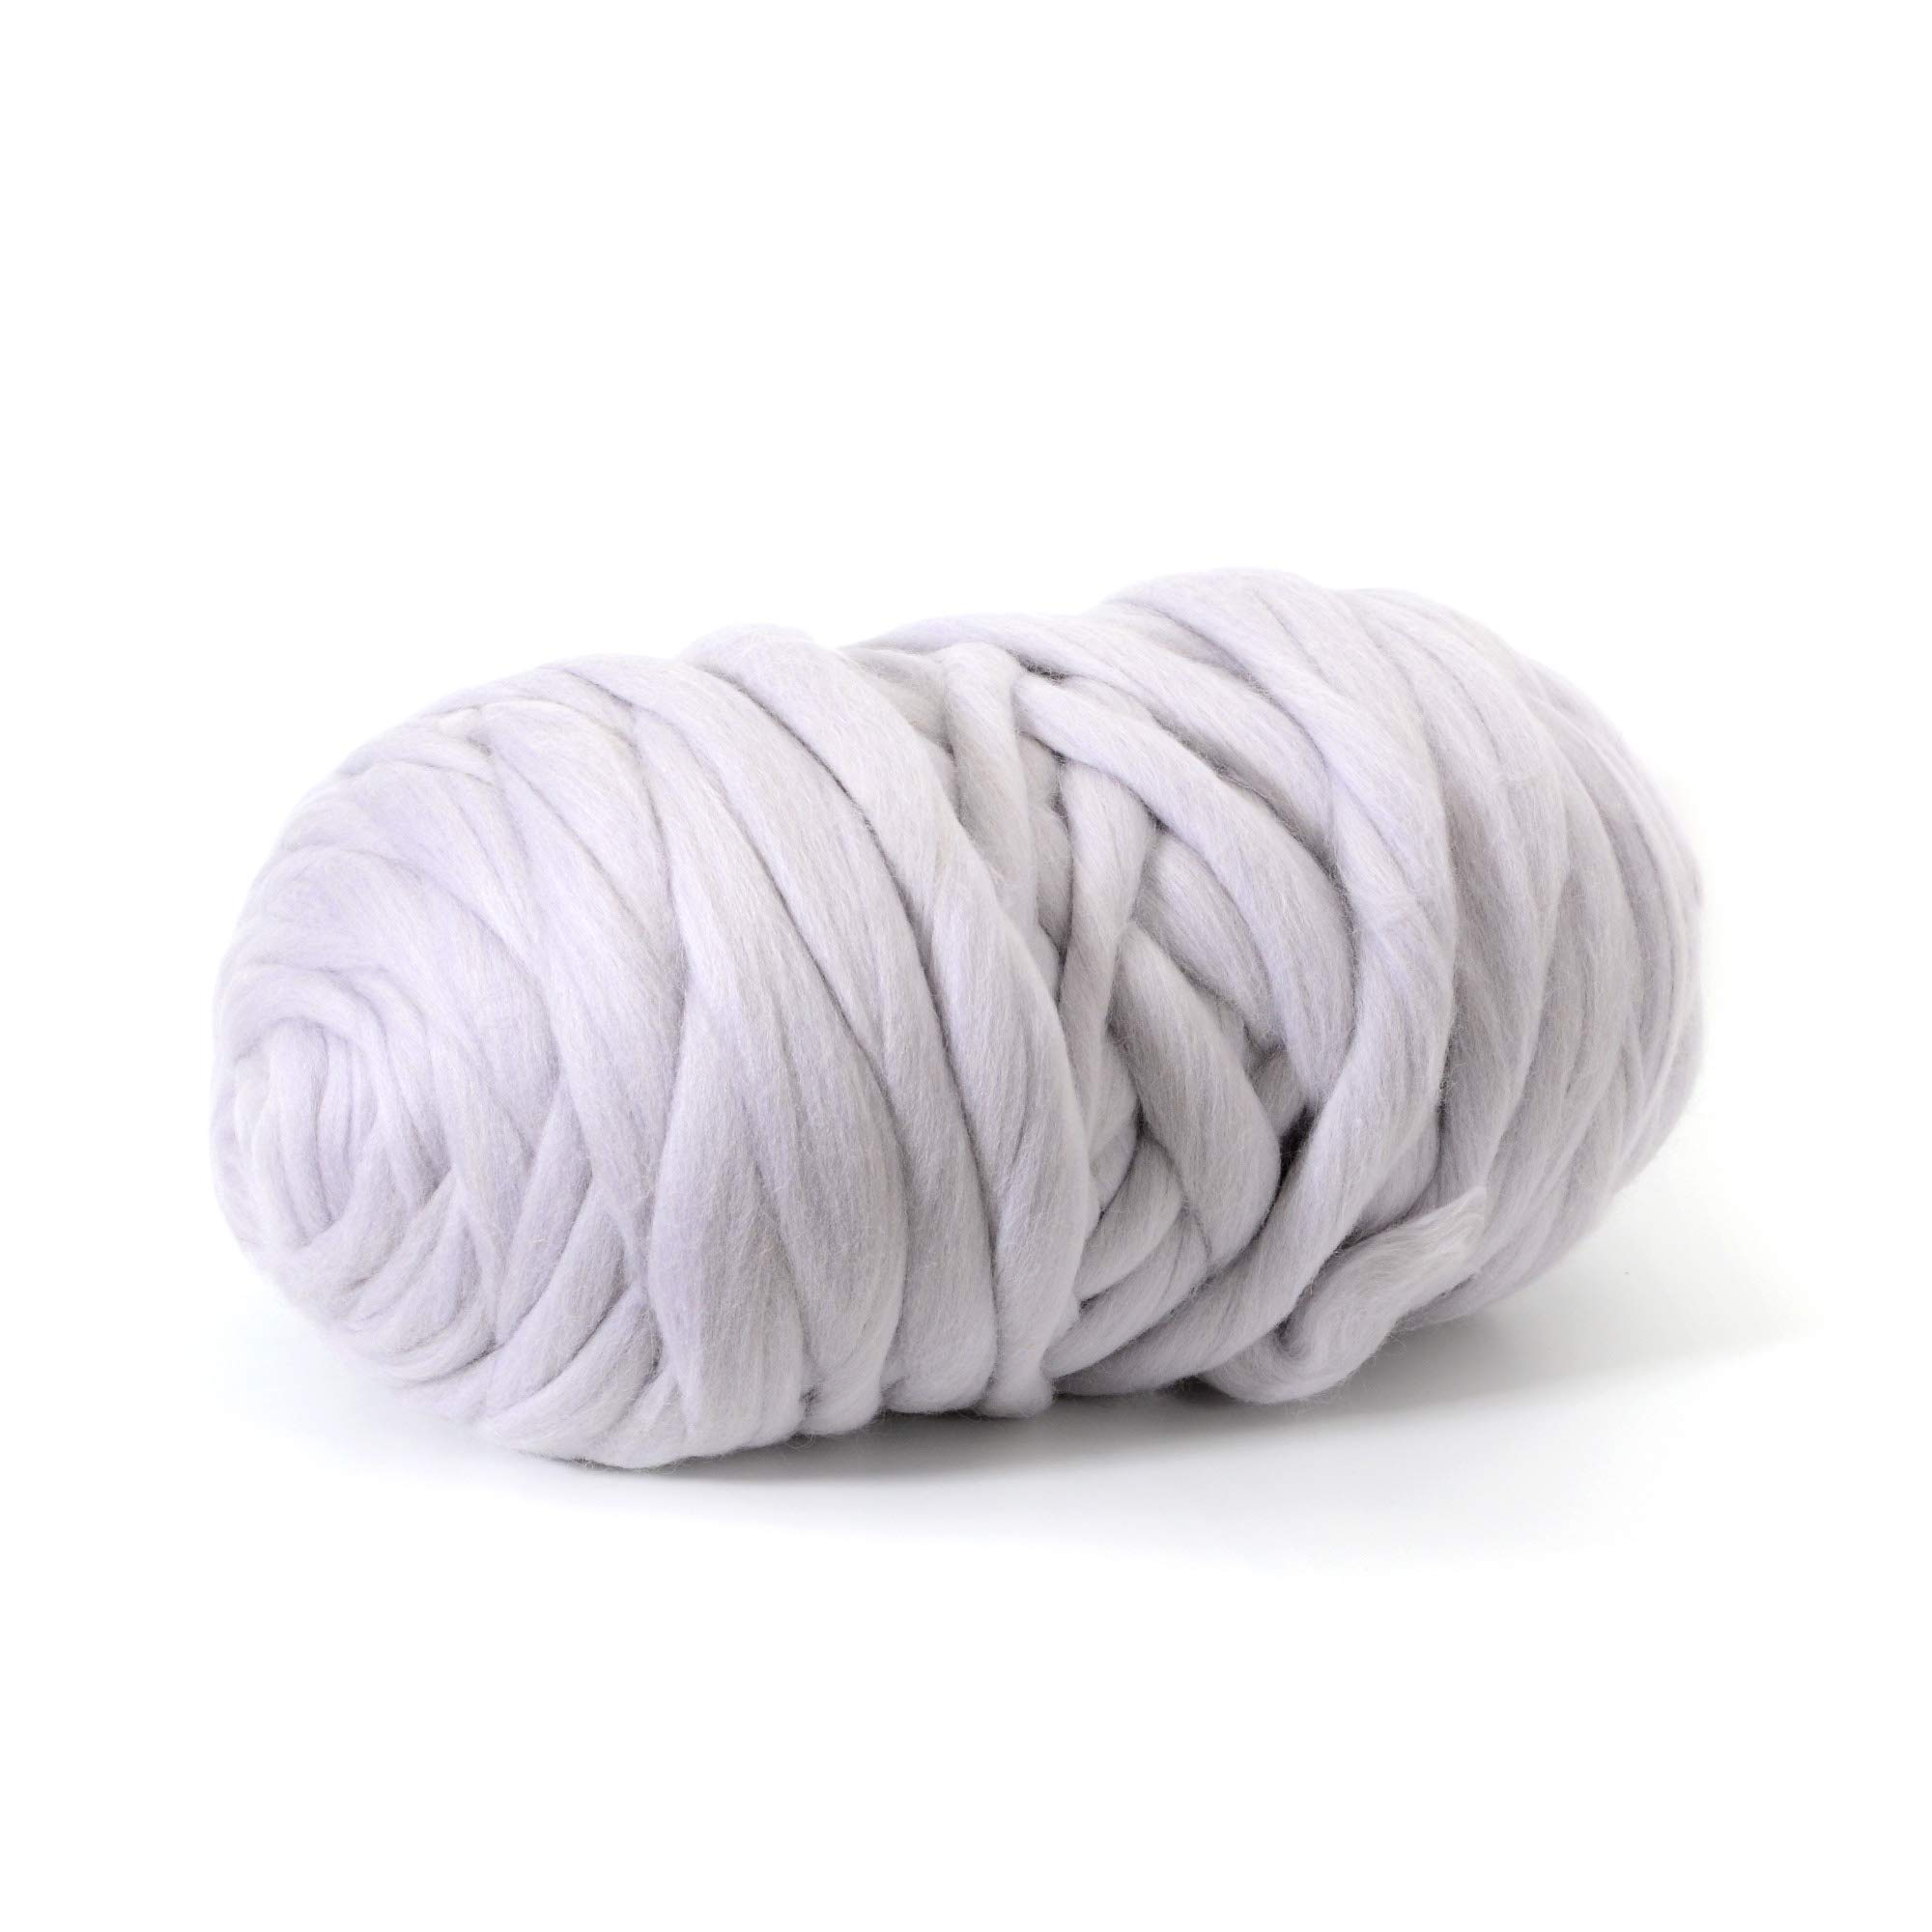 Glaciart One Chunky Merino Wool Yarn for Arm Knitting (5.5 Lbs) Jumbo Super Thick and Soft 100% Natural Lambs Roving Ball for Hand Weaving Giant Knit Stitch Blanket, Big Bulky Throw or Scarf